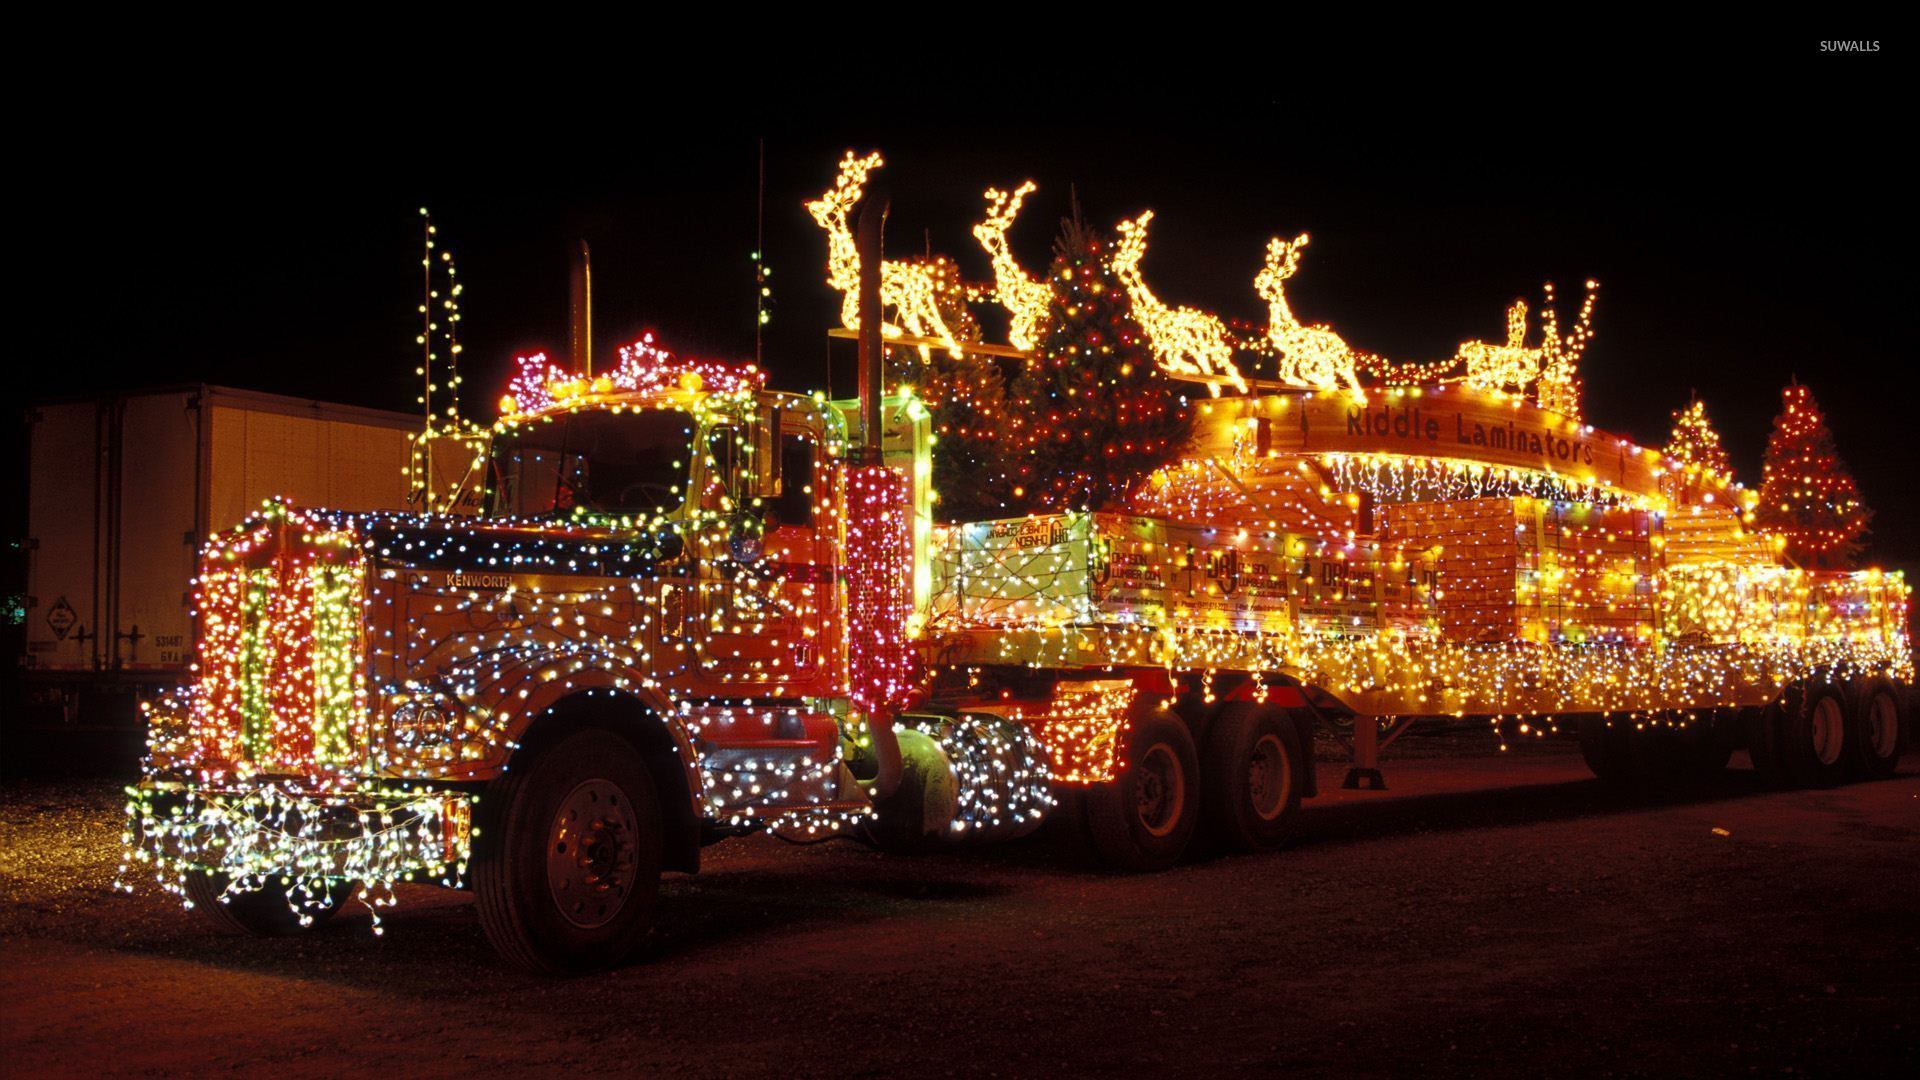 Merry Christmas Wall Lights : Truck with Christmas lights wallpaper - Holiday wallpapers - #51003